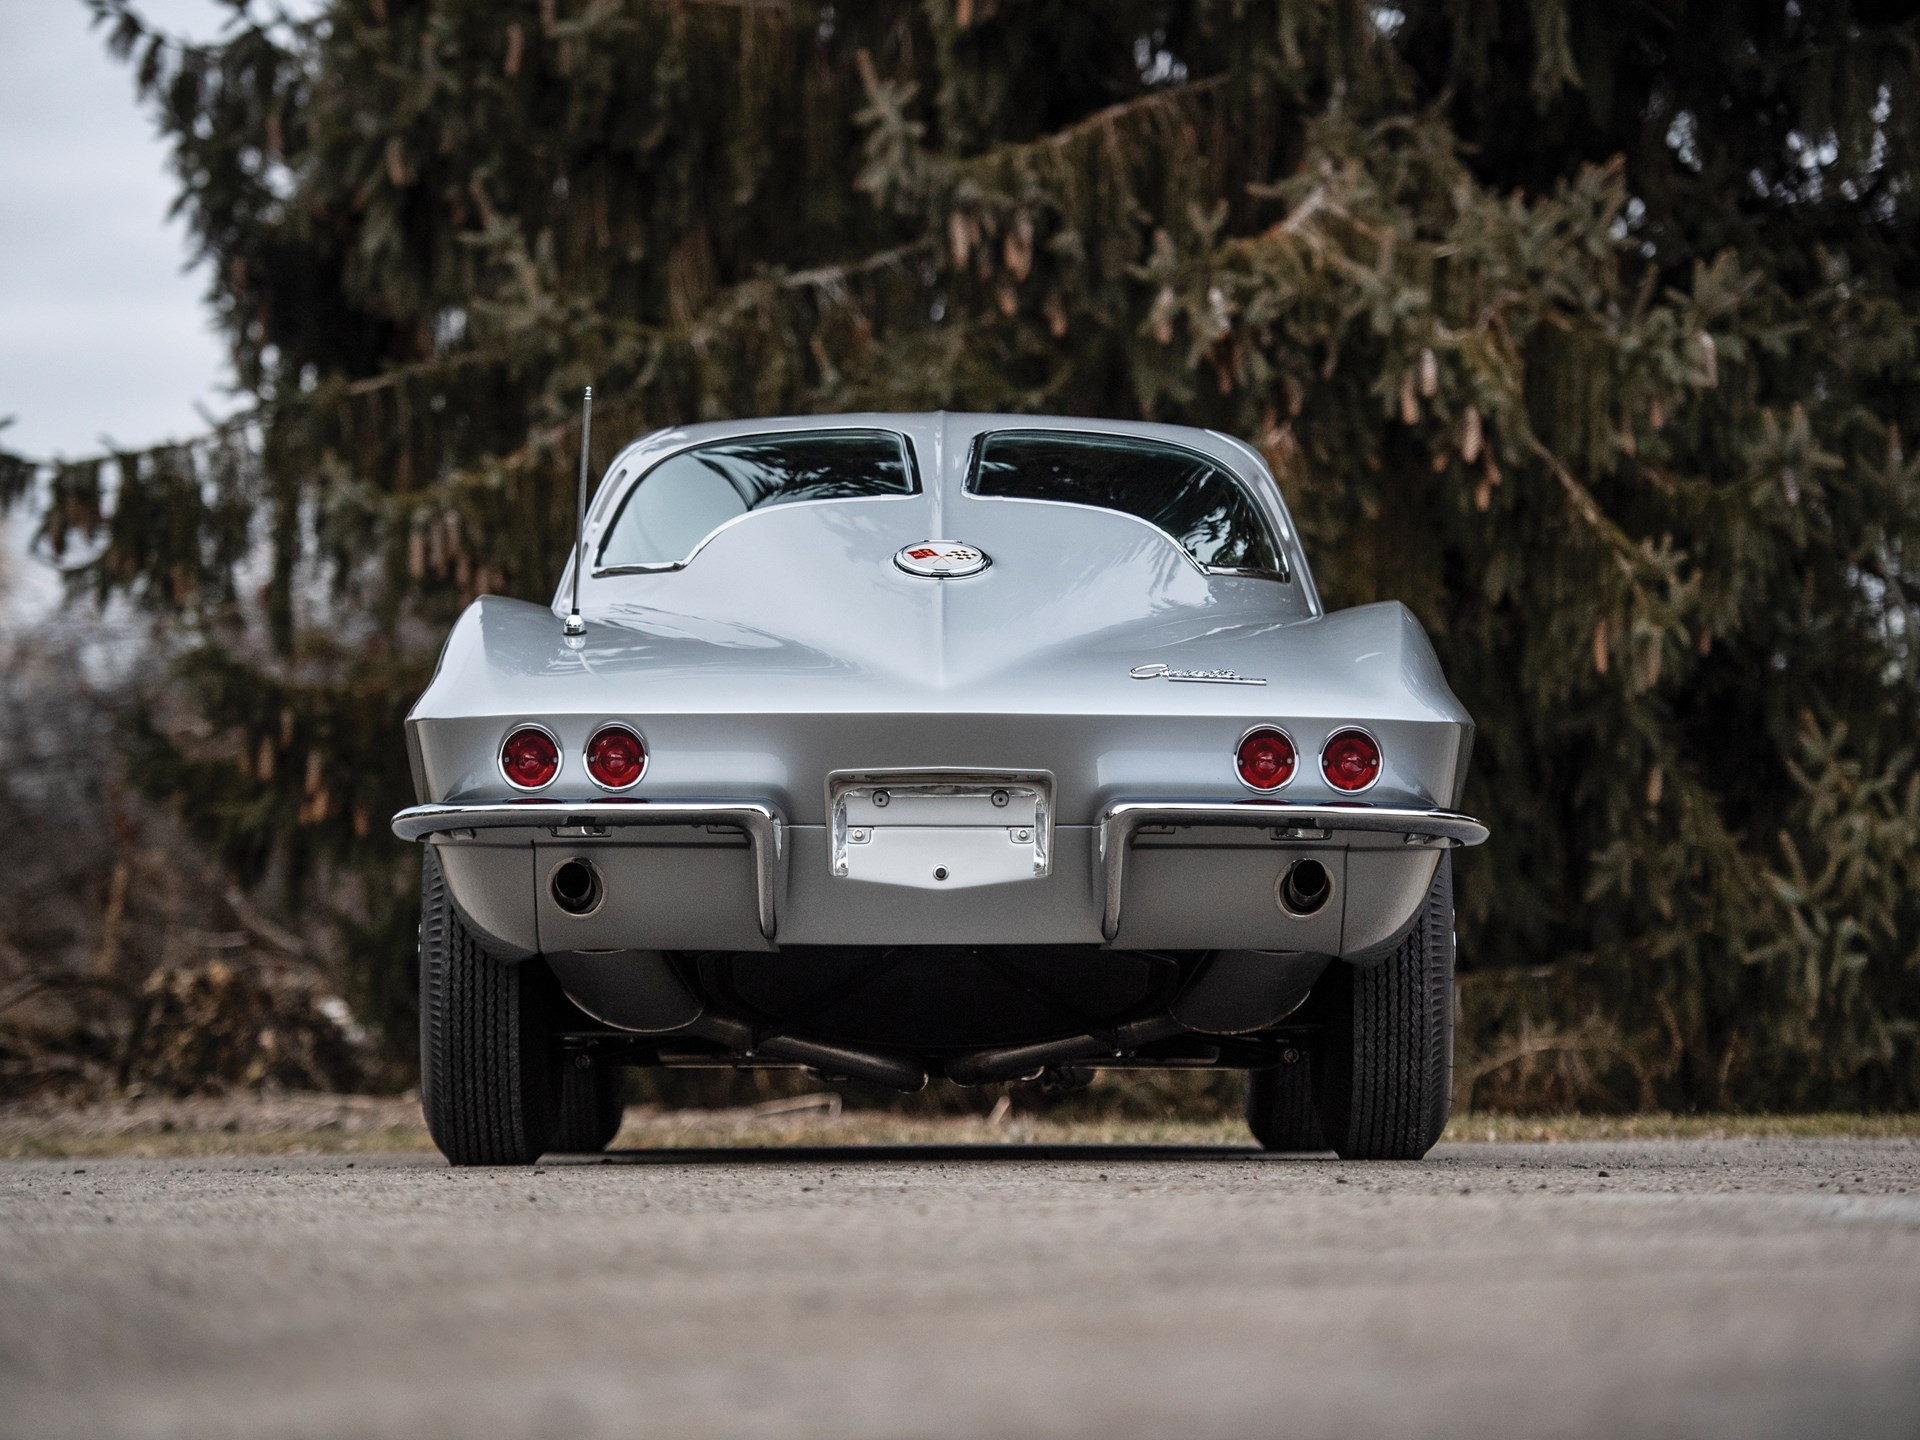 RM Sotheby's - 1963 Chevrolet Corvette Sting Ray 'Fuel